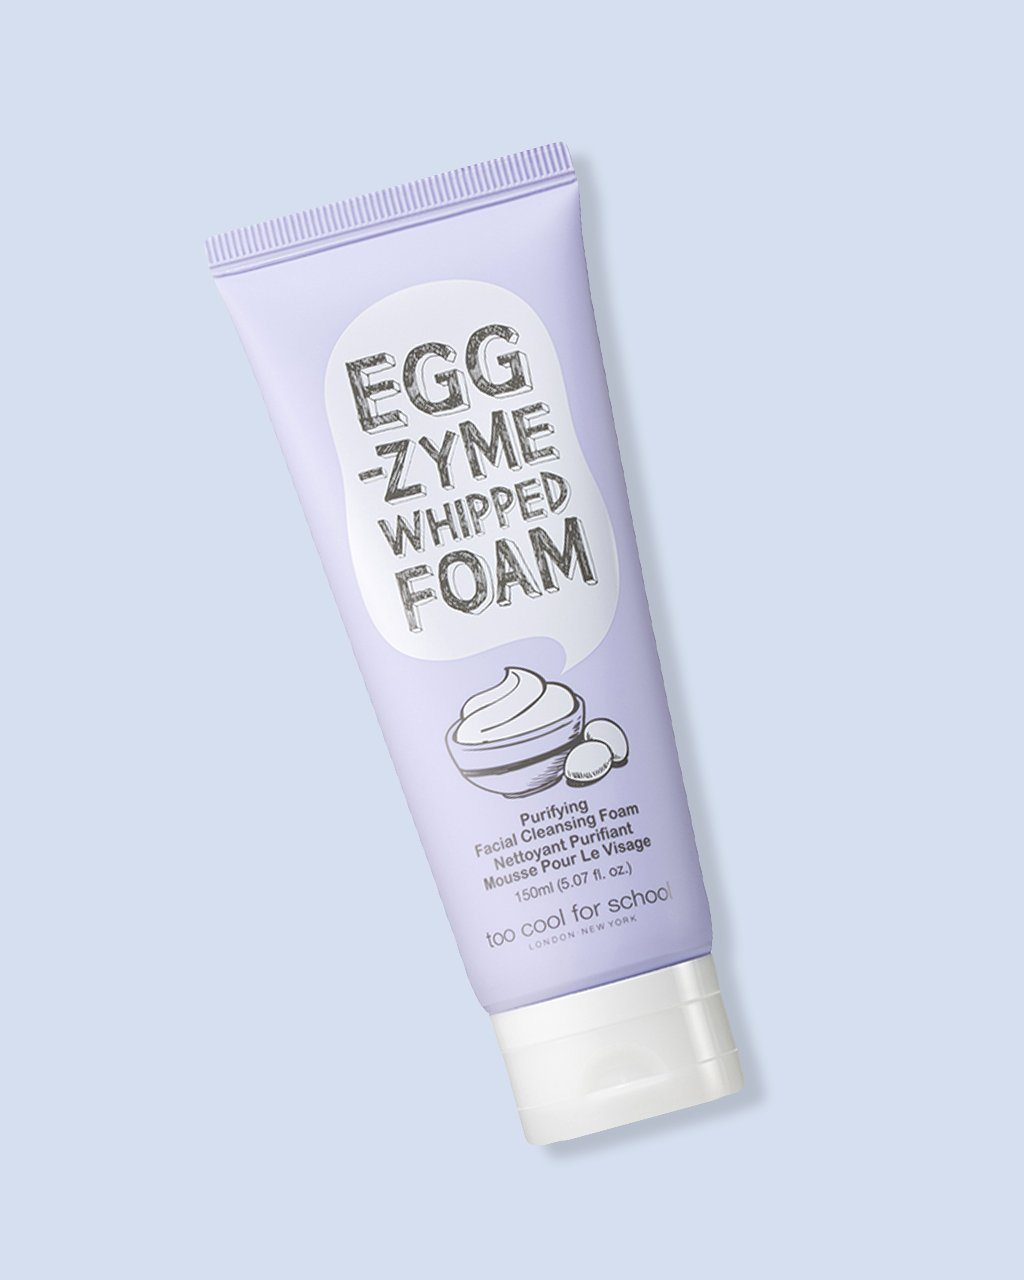 Egg-zyme Whipped Foam Product Image